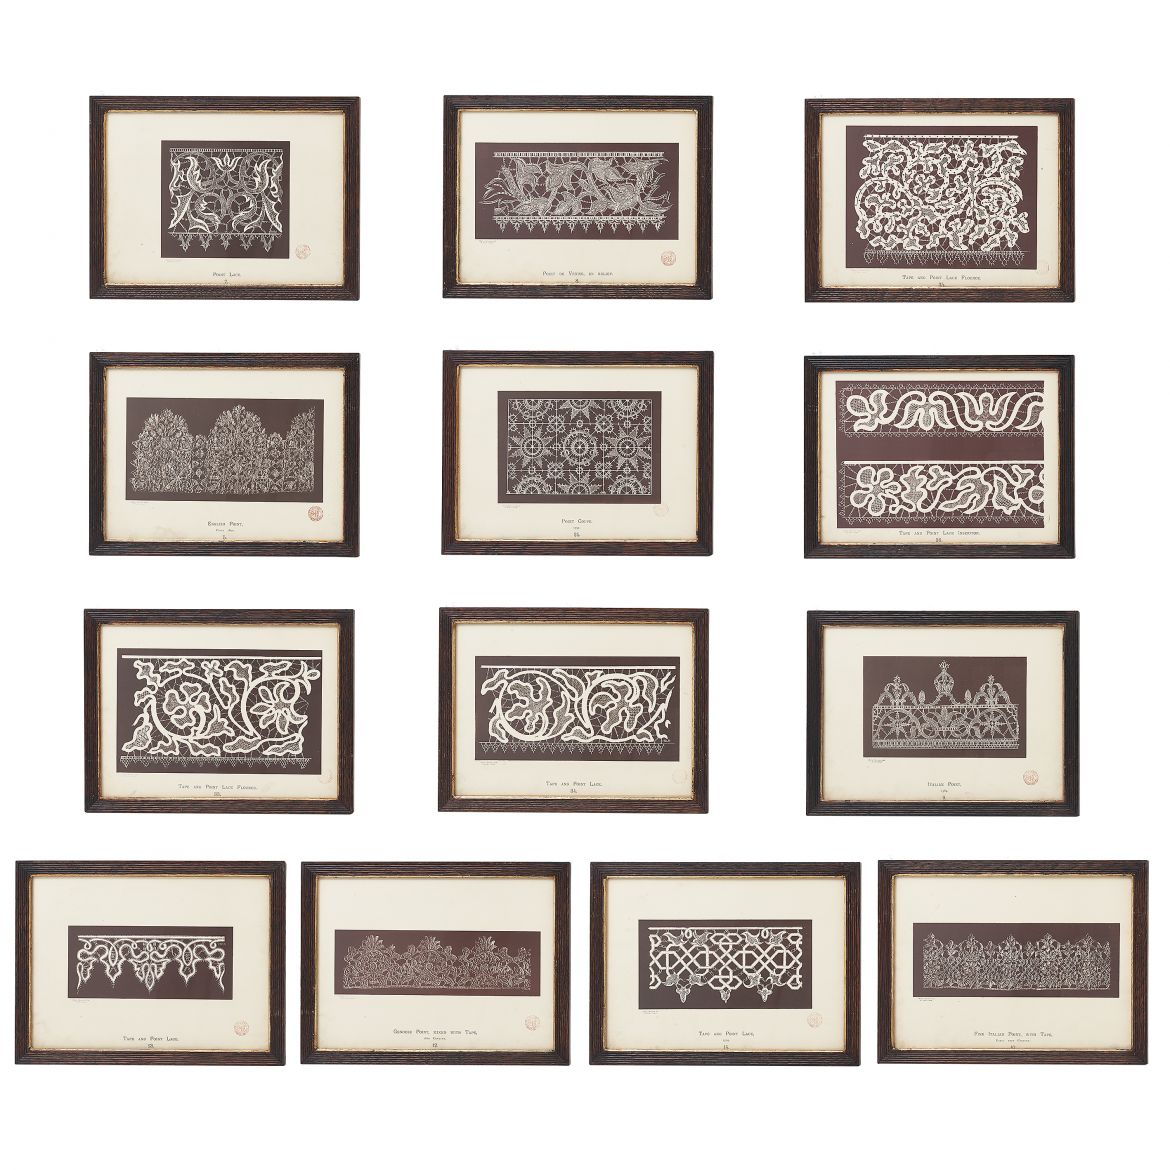 Set 13 Lithographs From 'History Of Lace'